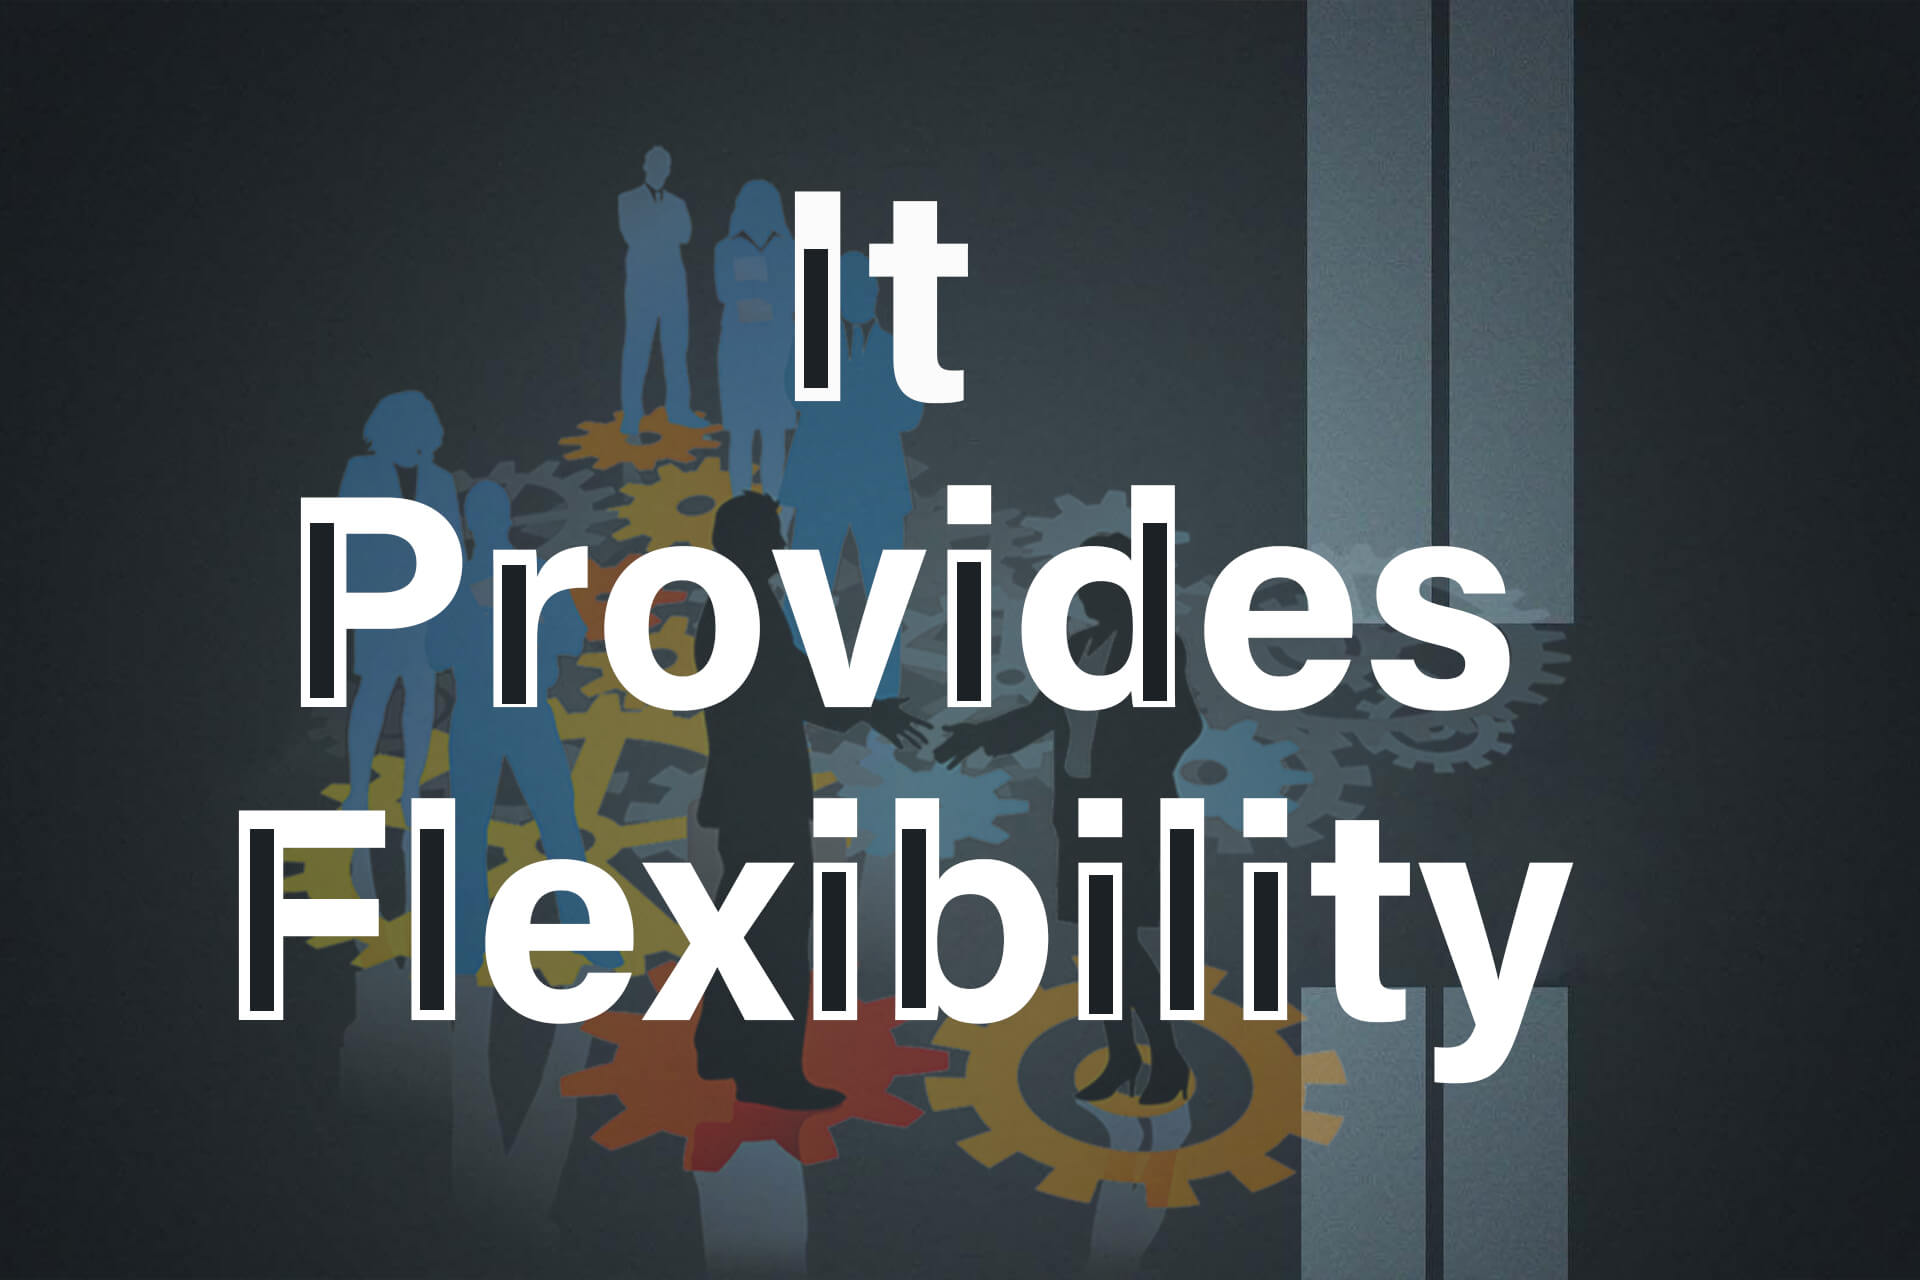 Outsourcing provides flexibility in business